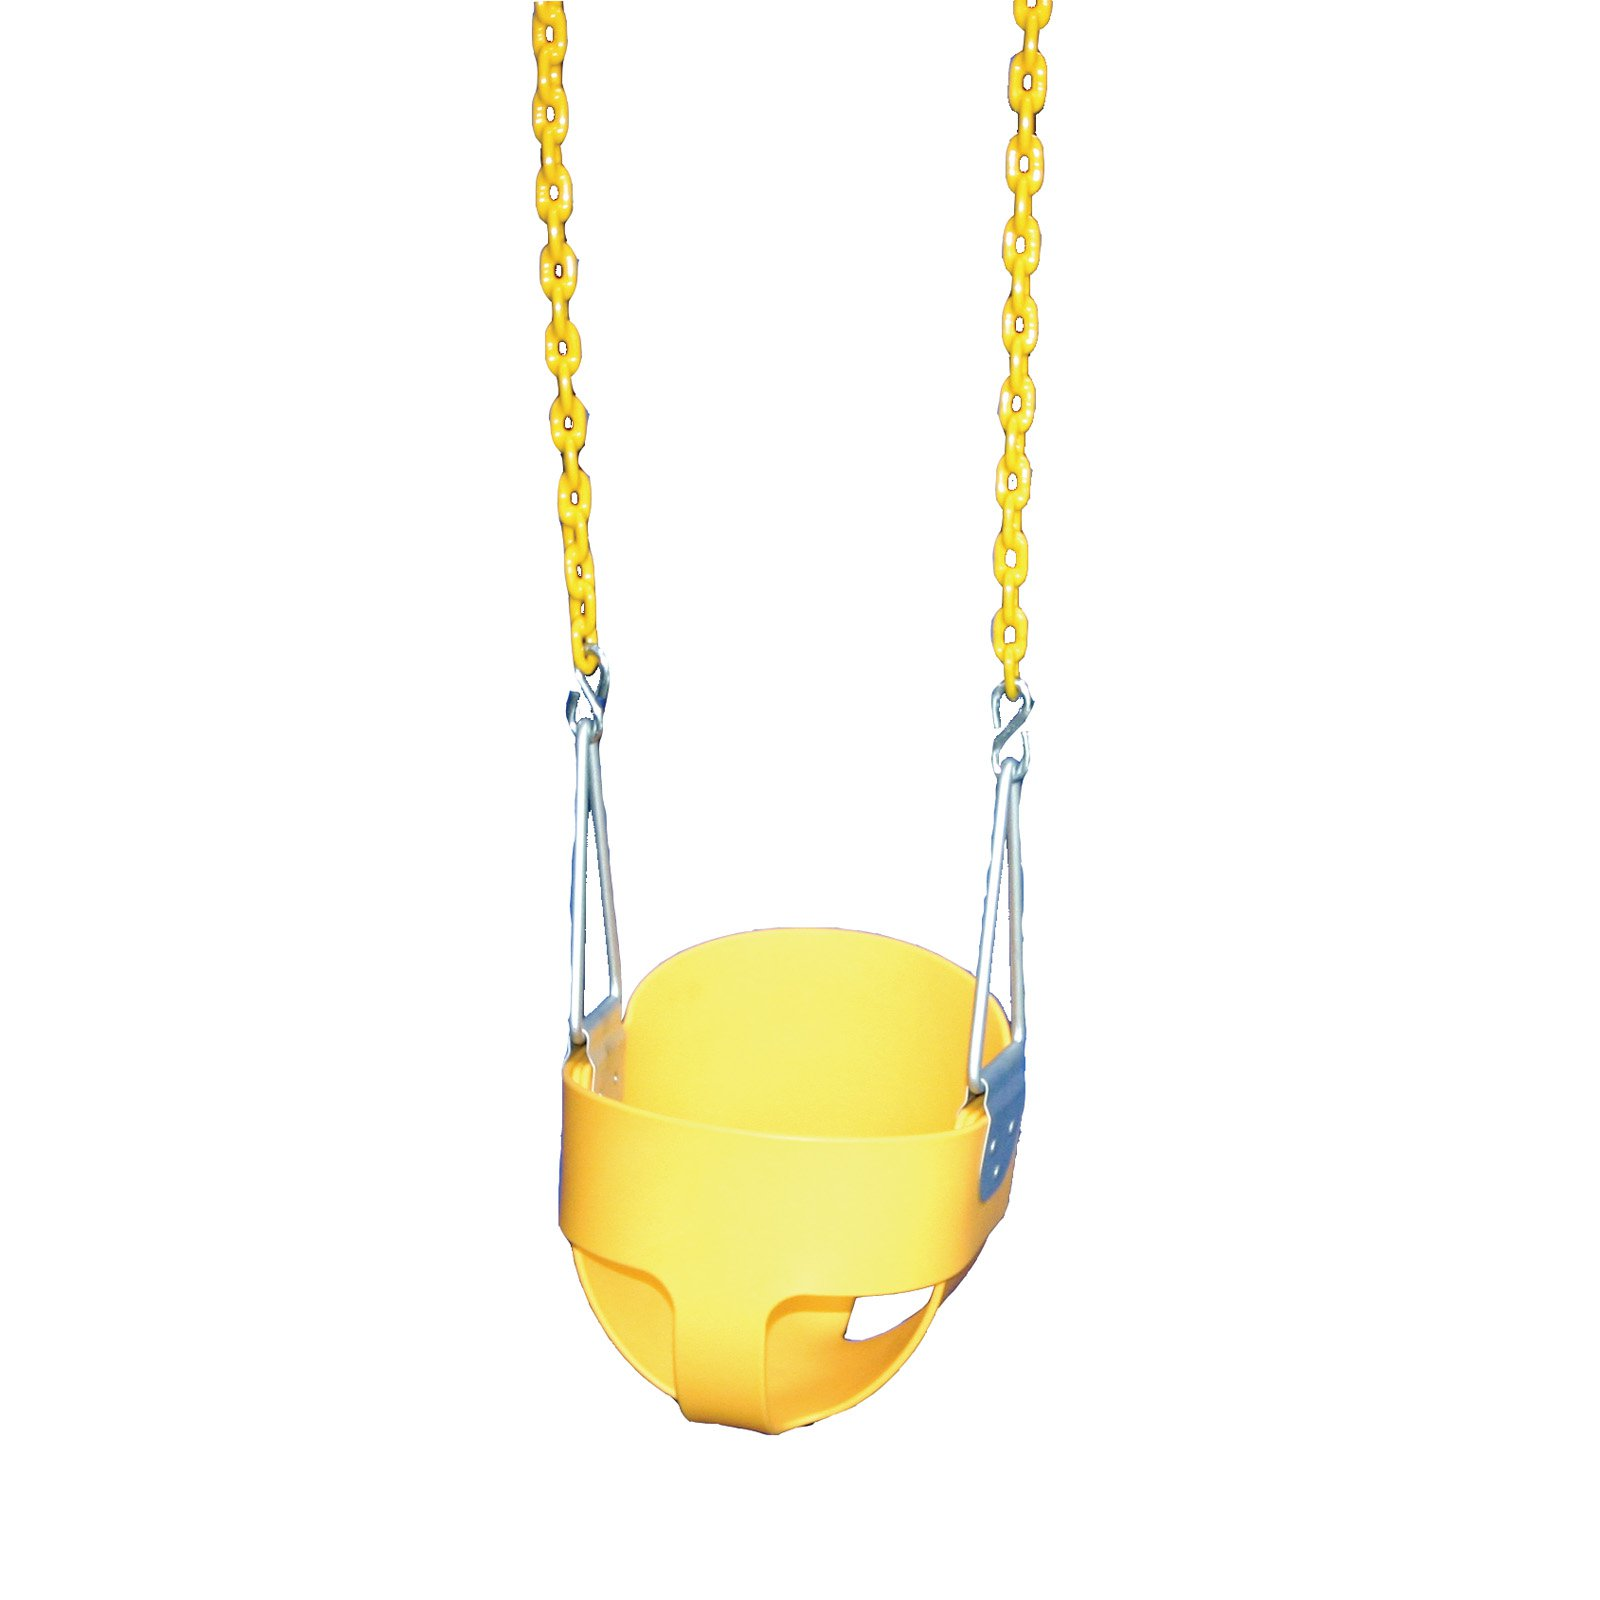 Gorilla Playsets Yellow Full Bucket Swing with Yellow Chains